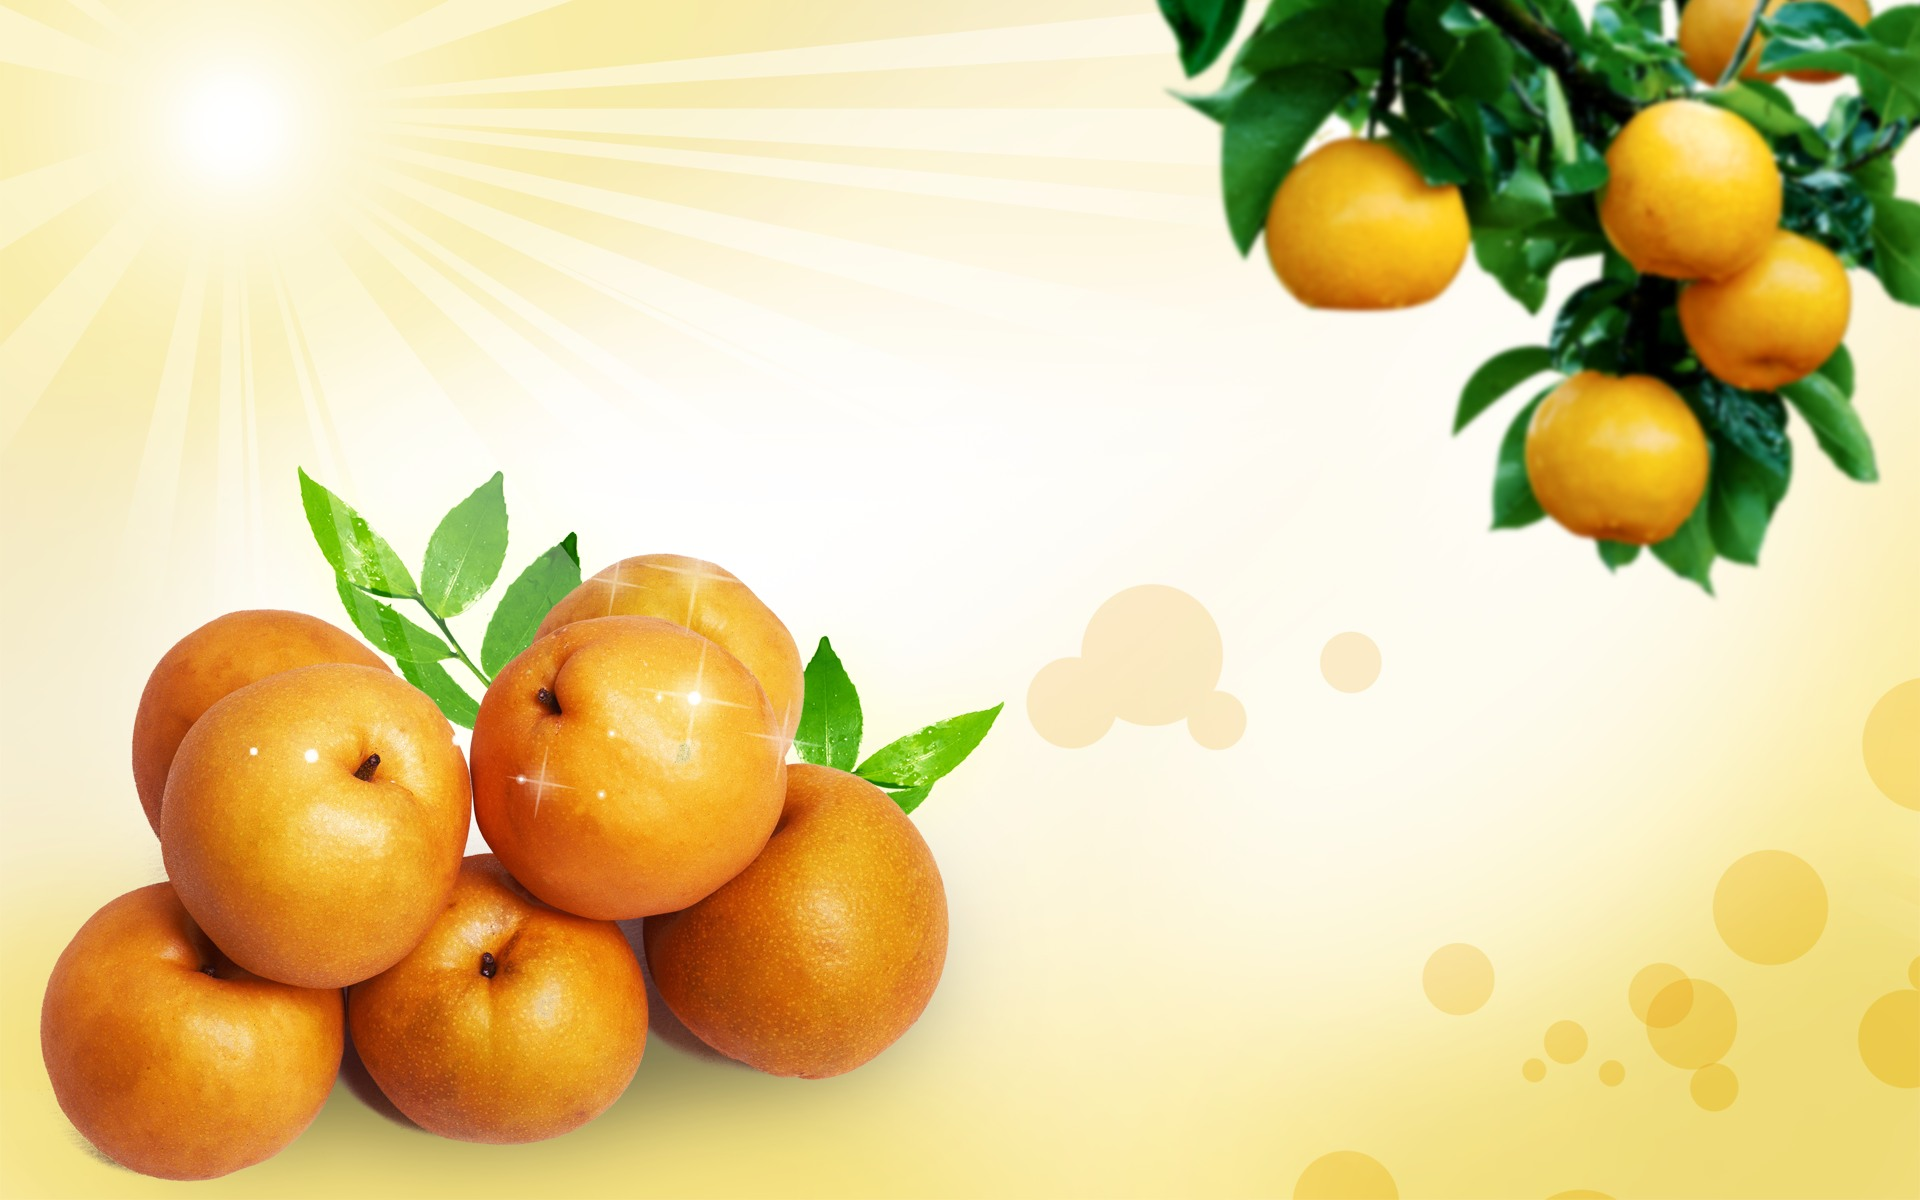 web fruit design image background wallpapers collections 1920x1200